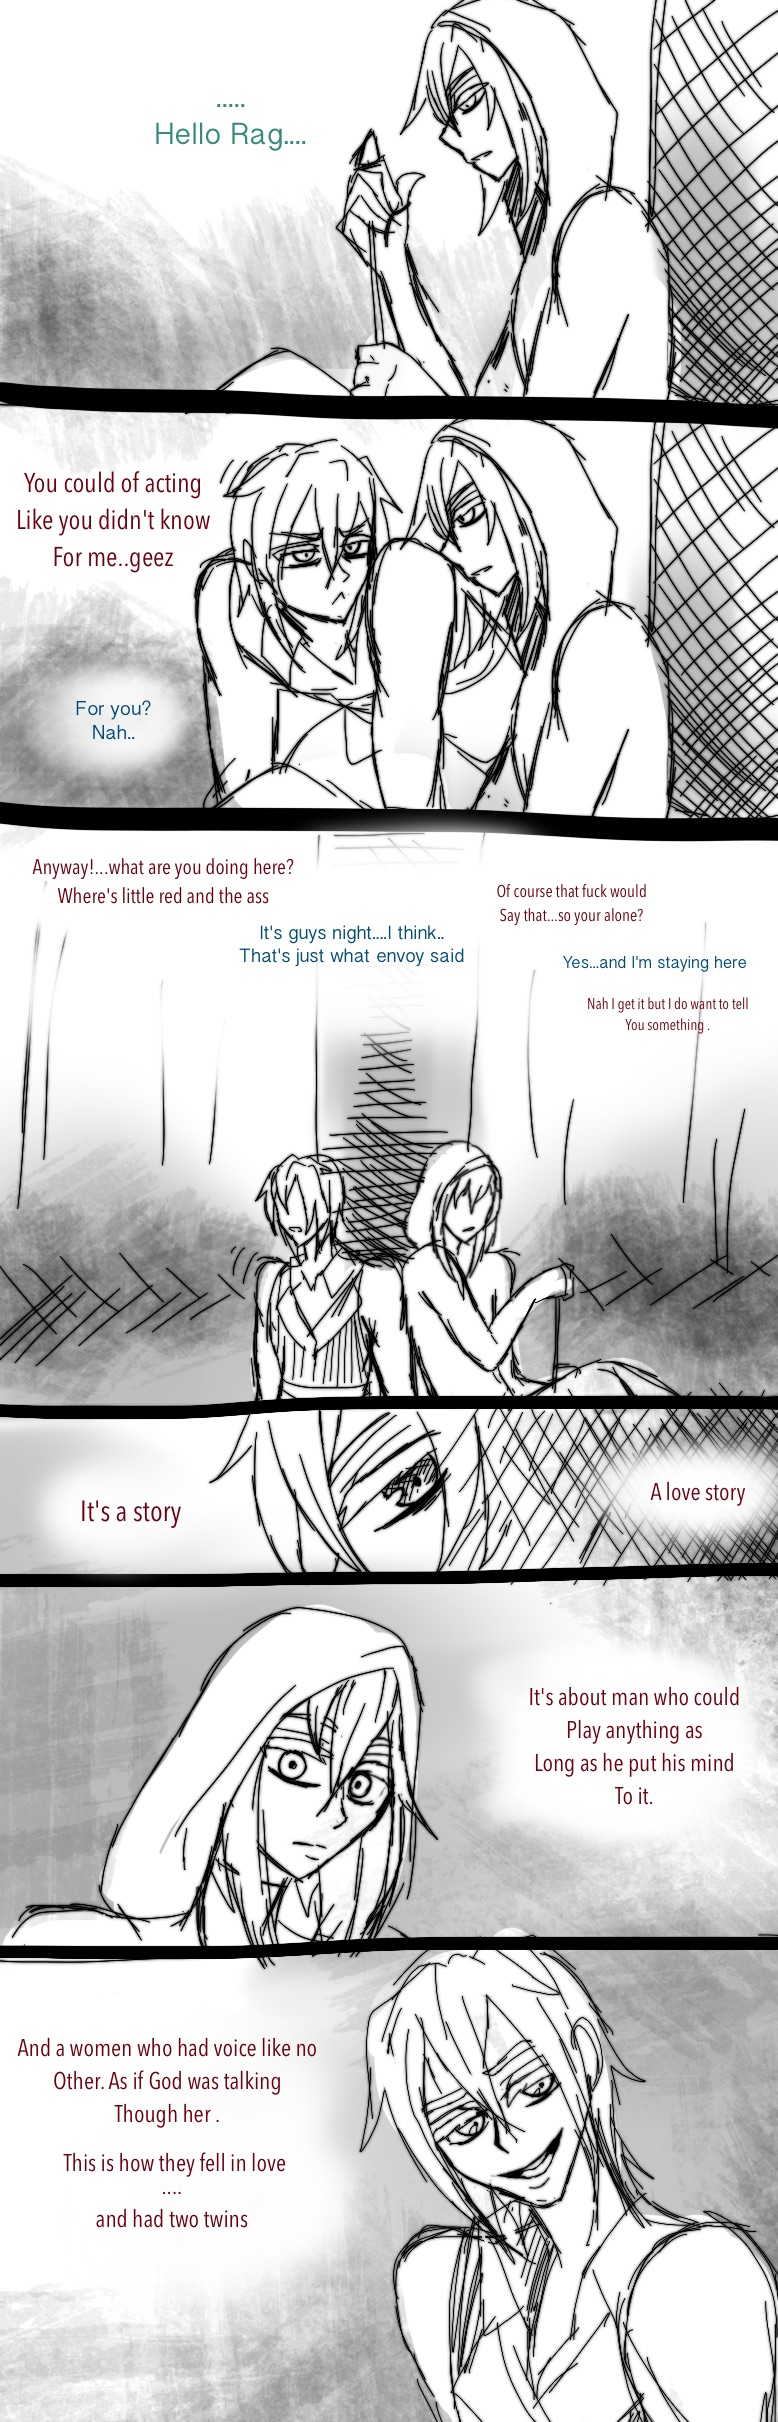 Let me tell you a story pt1 by AK-47x